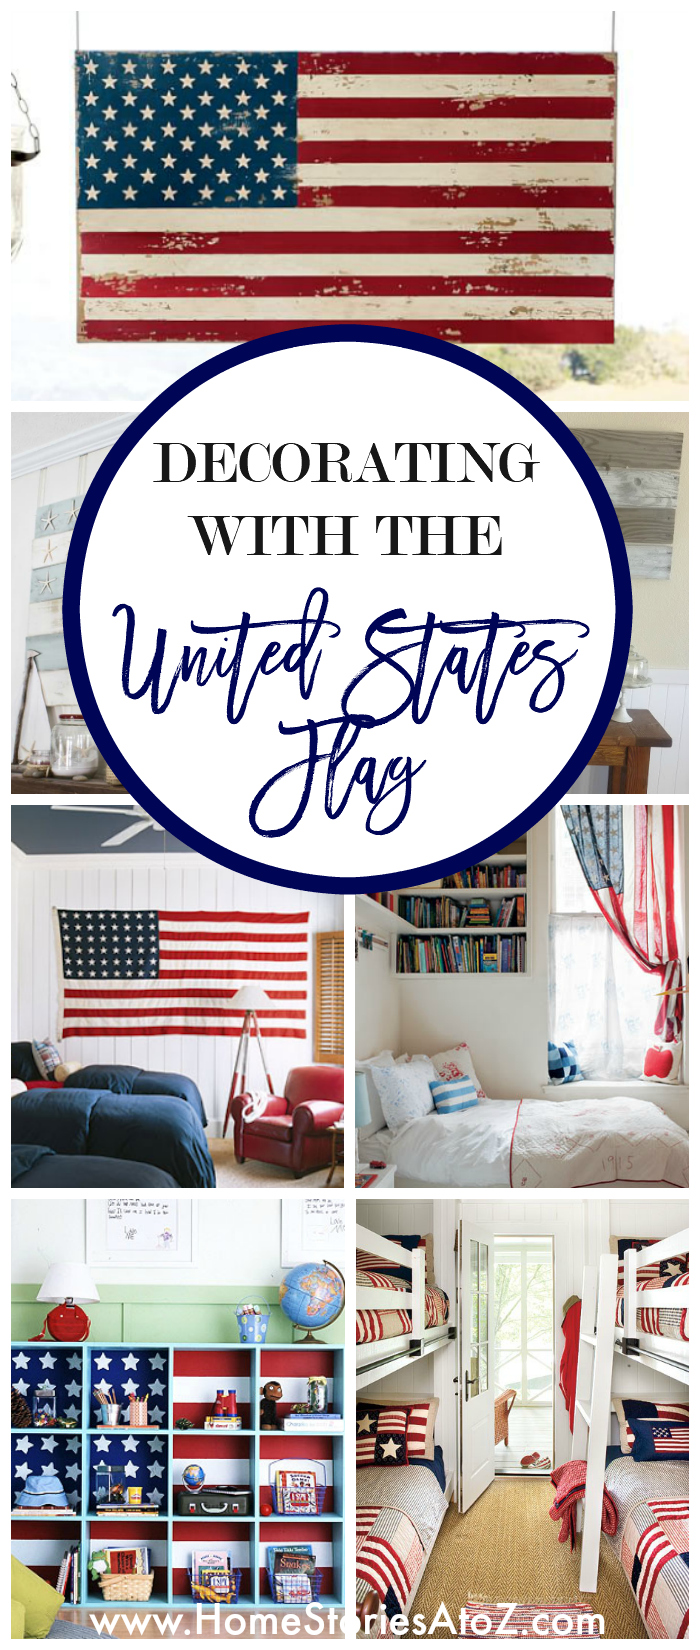 Decorating-with-the-United-States-Flag-